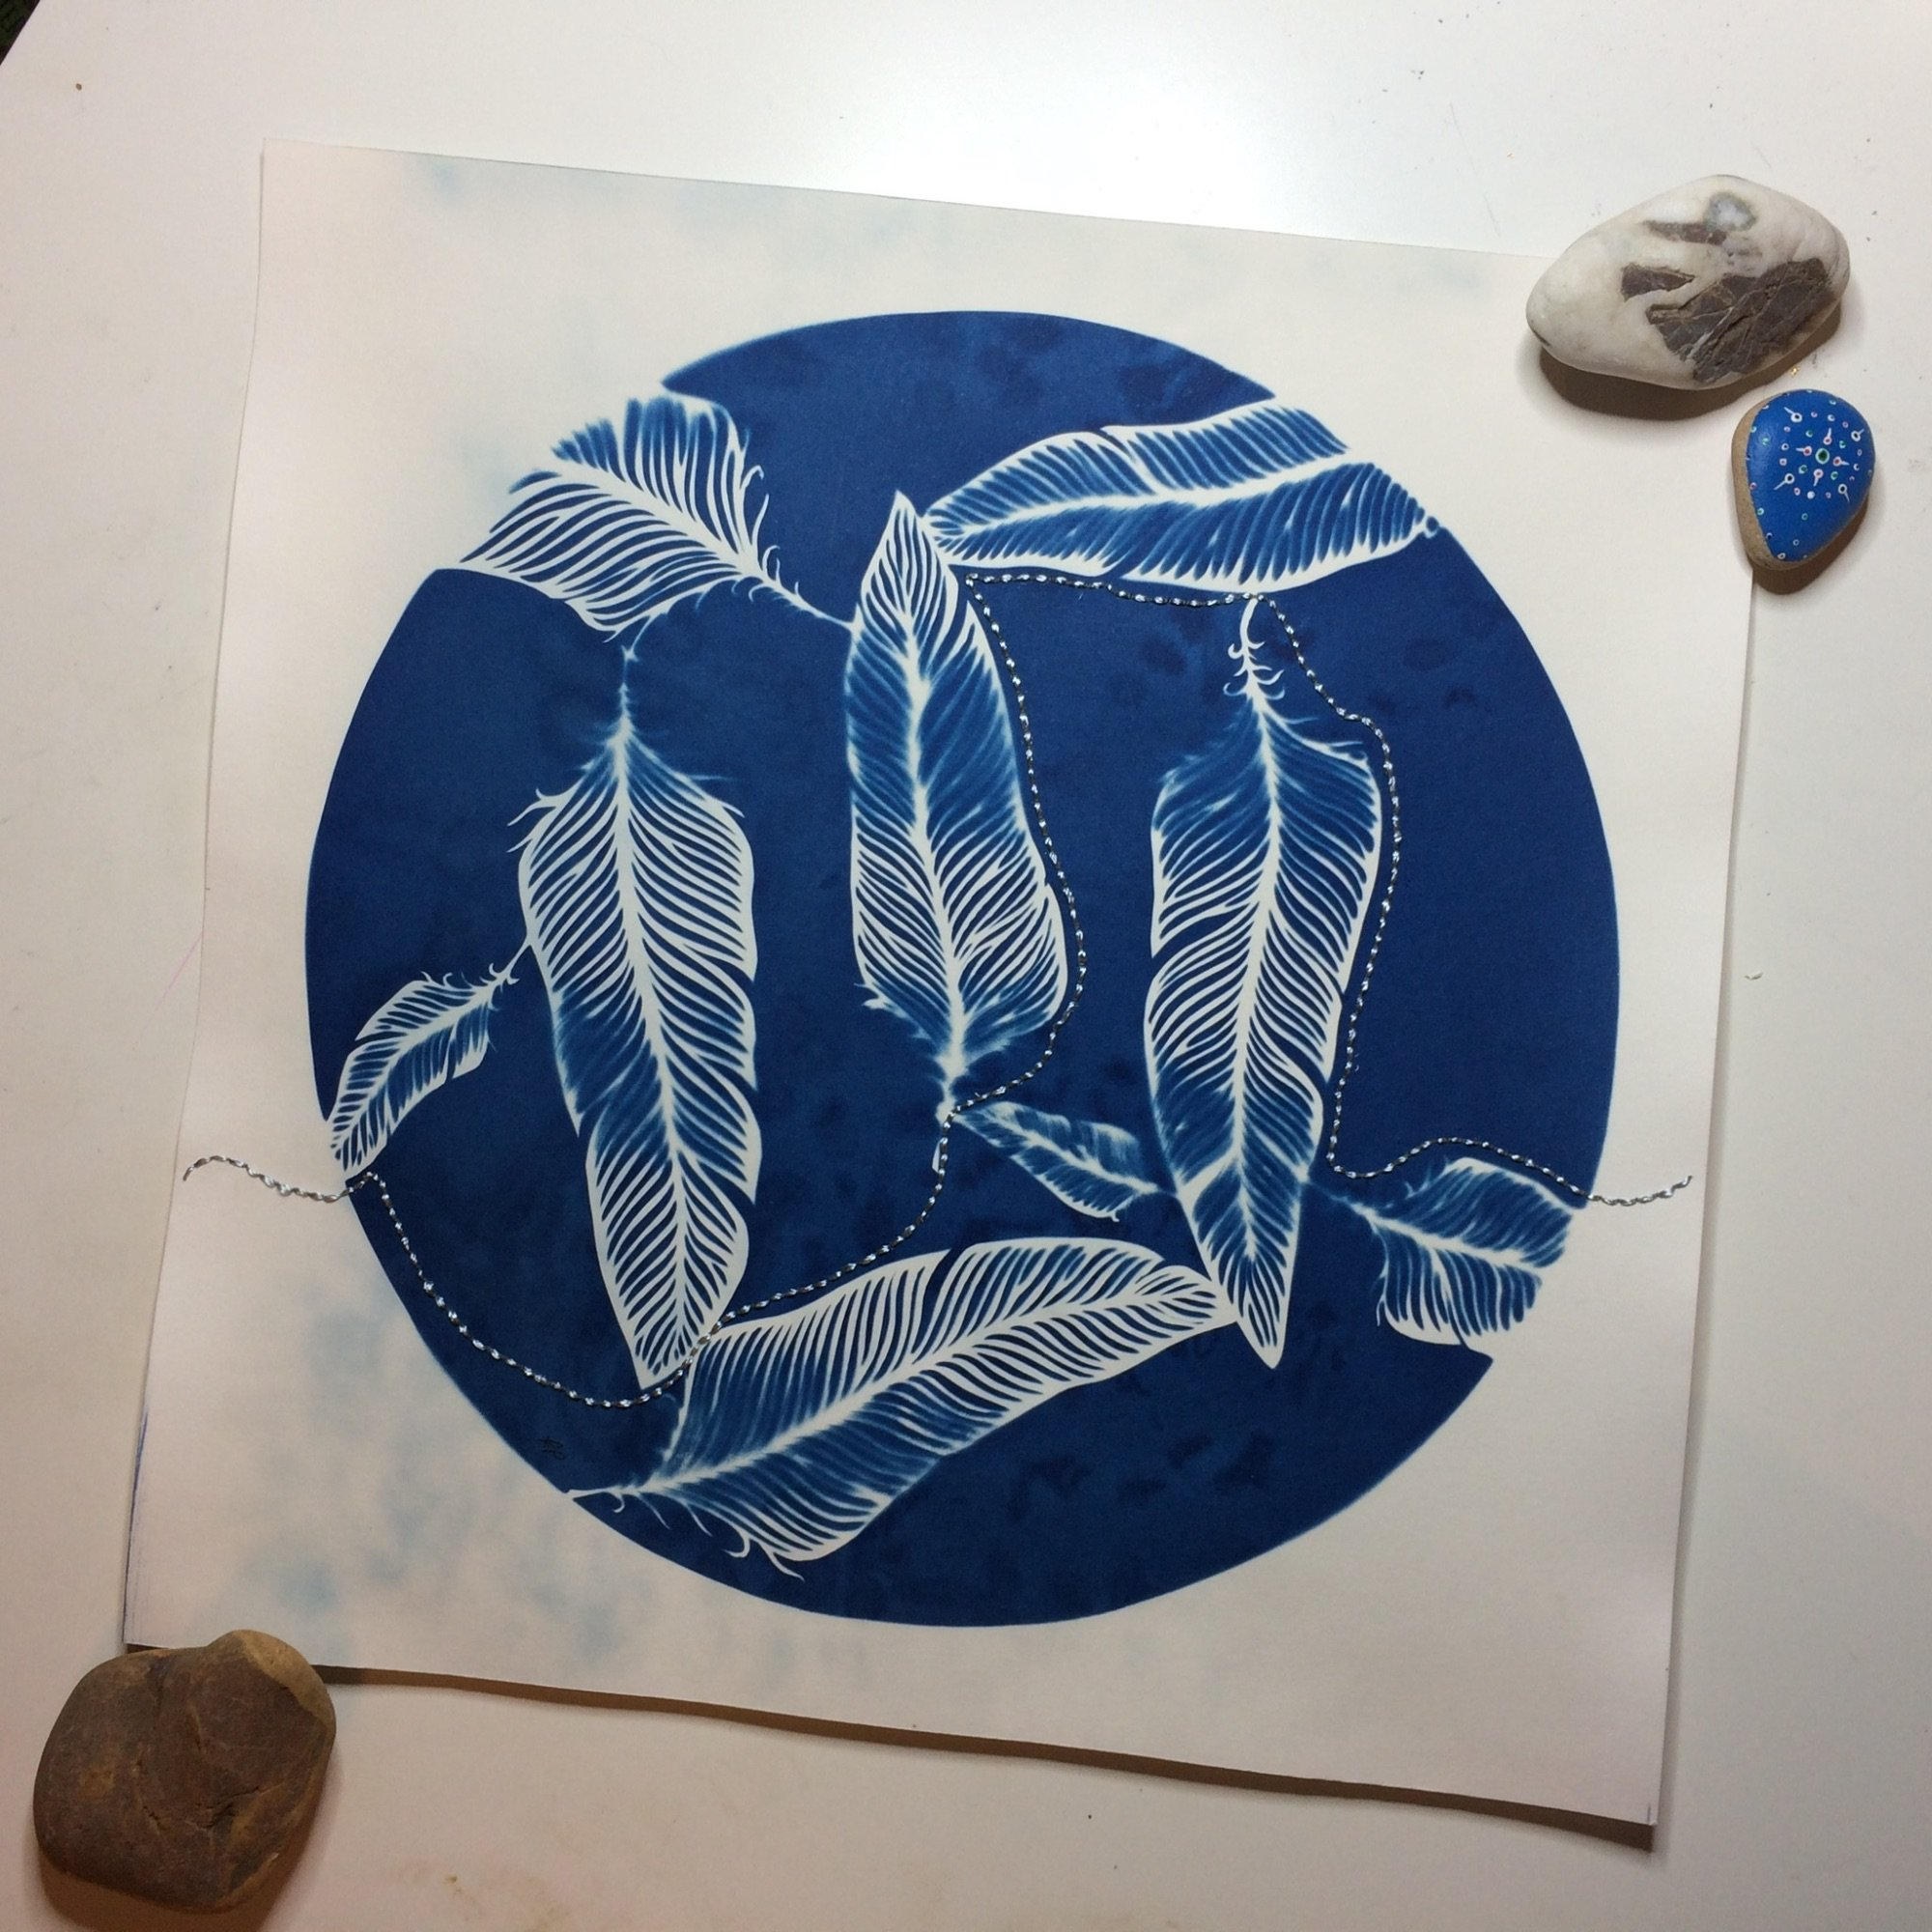 Stitched Cyanotype Print by Frances Payne